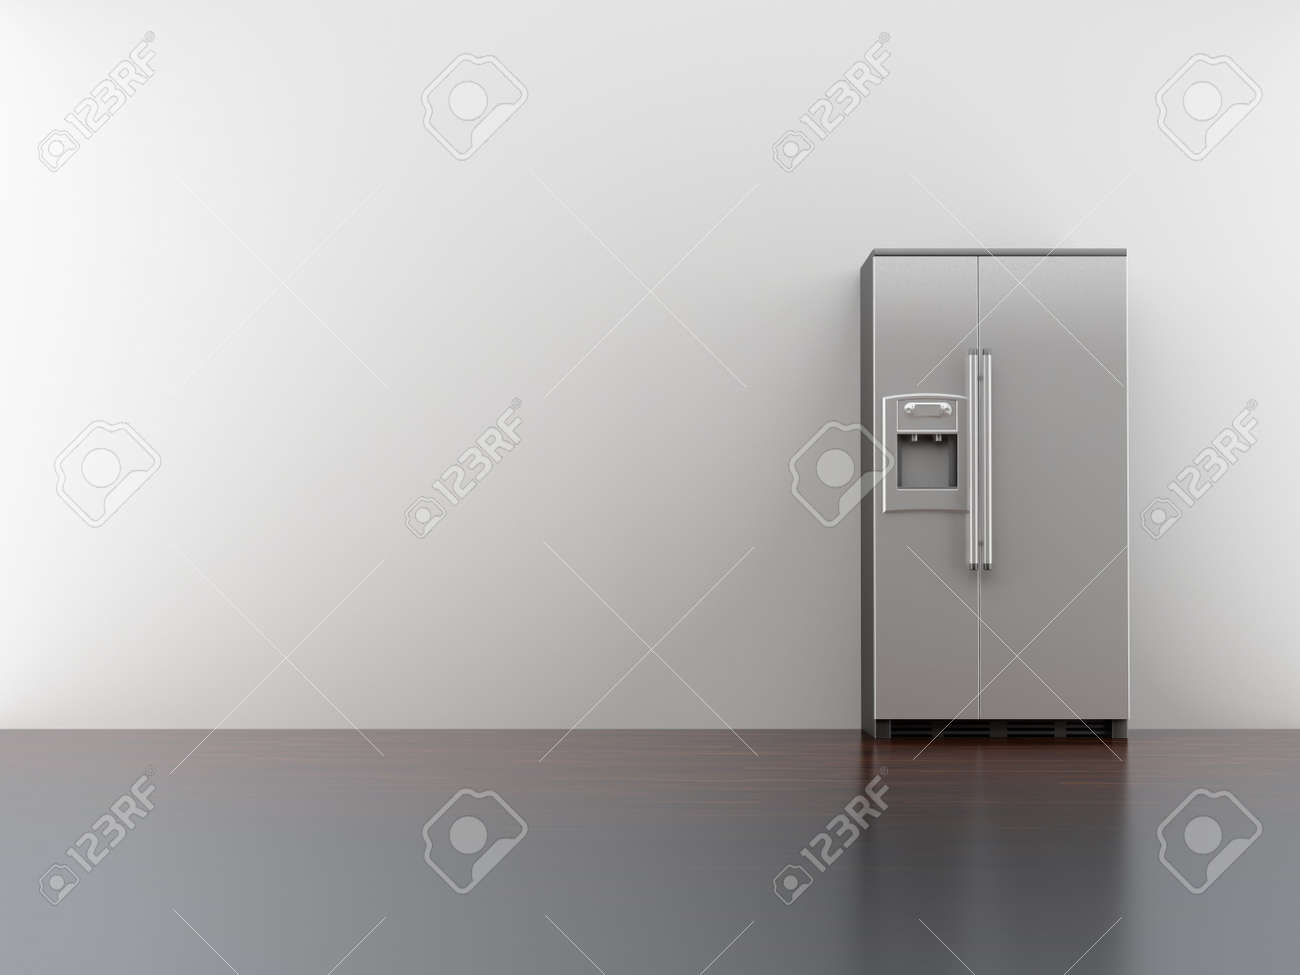 Blank Kitchen Wall Fridge On Blank White Wall Stock Photo Picture And Royalty Free